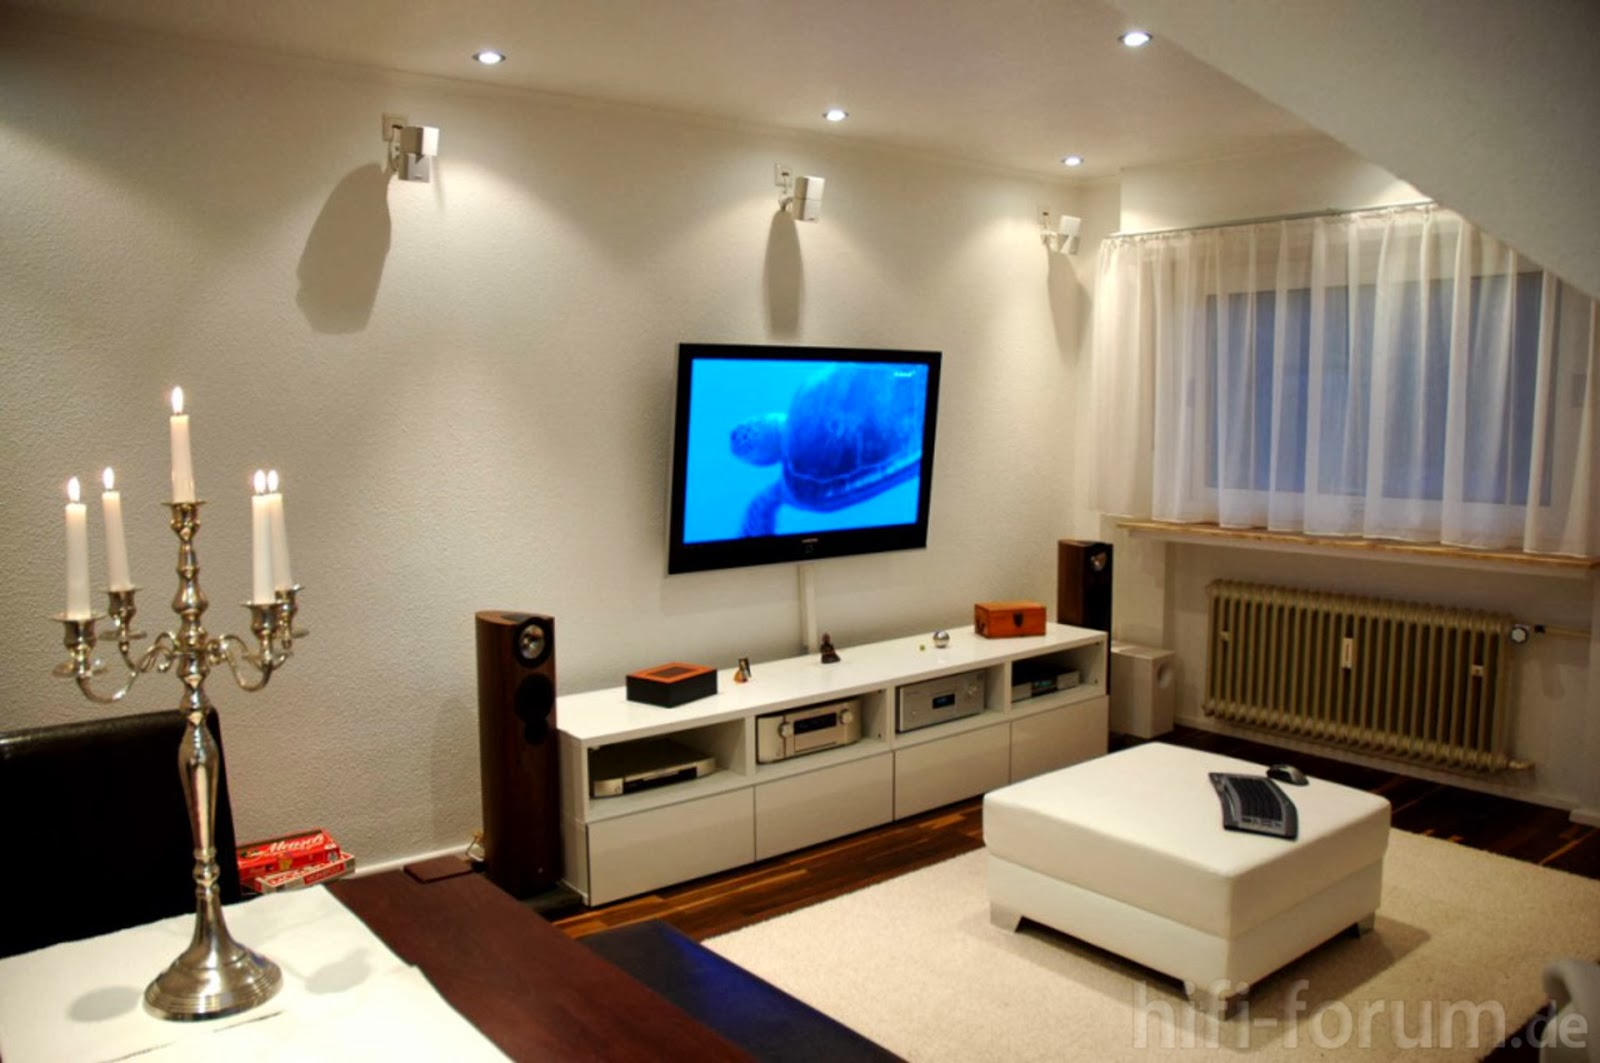 Salas modernas con tv salas con estilo for Ideas de decoracion para salas modernas